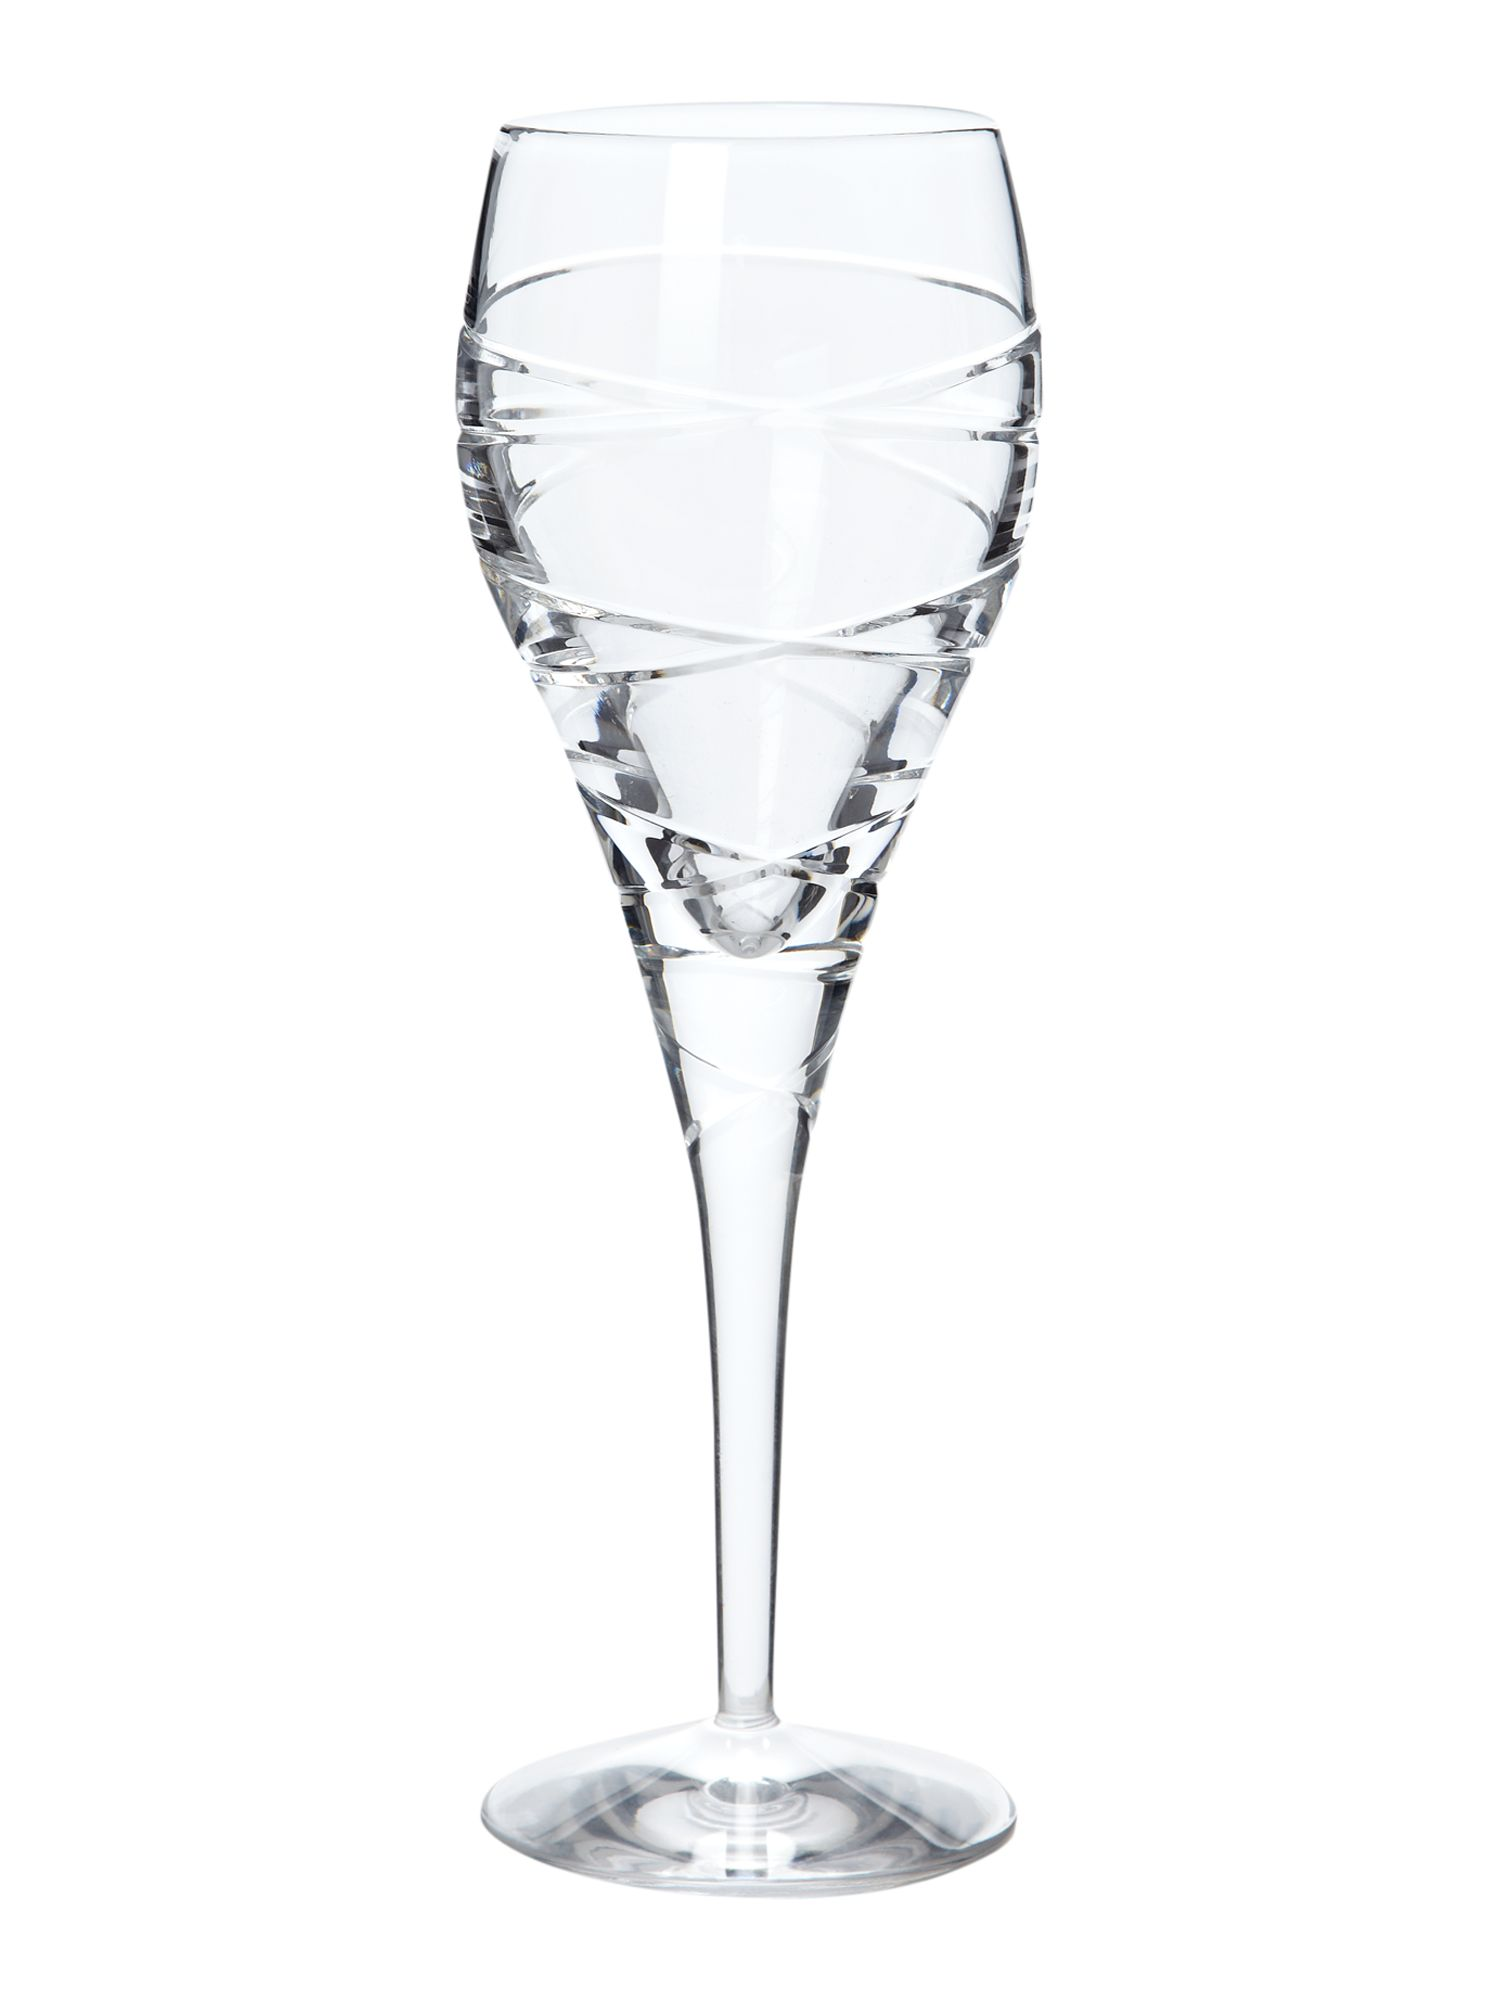 Spiral white wine glass